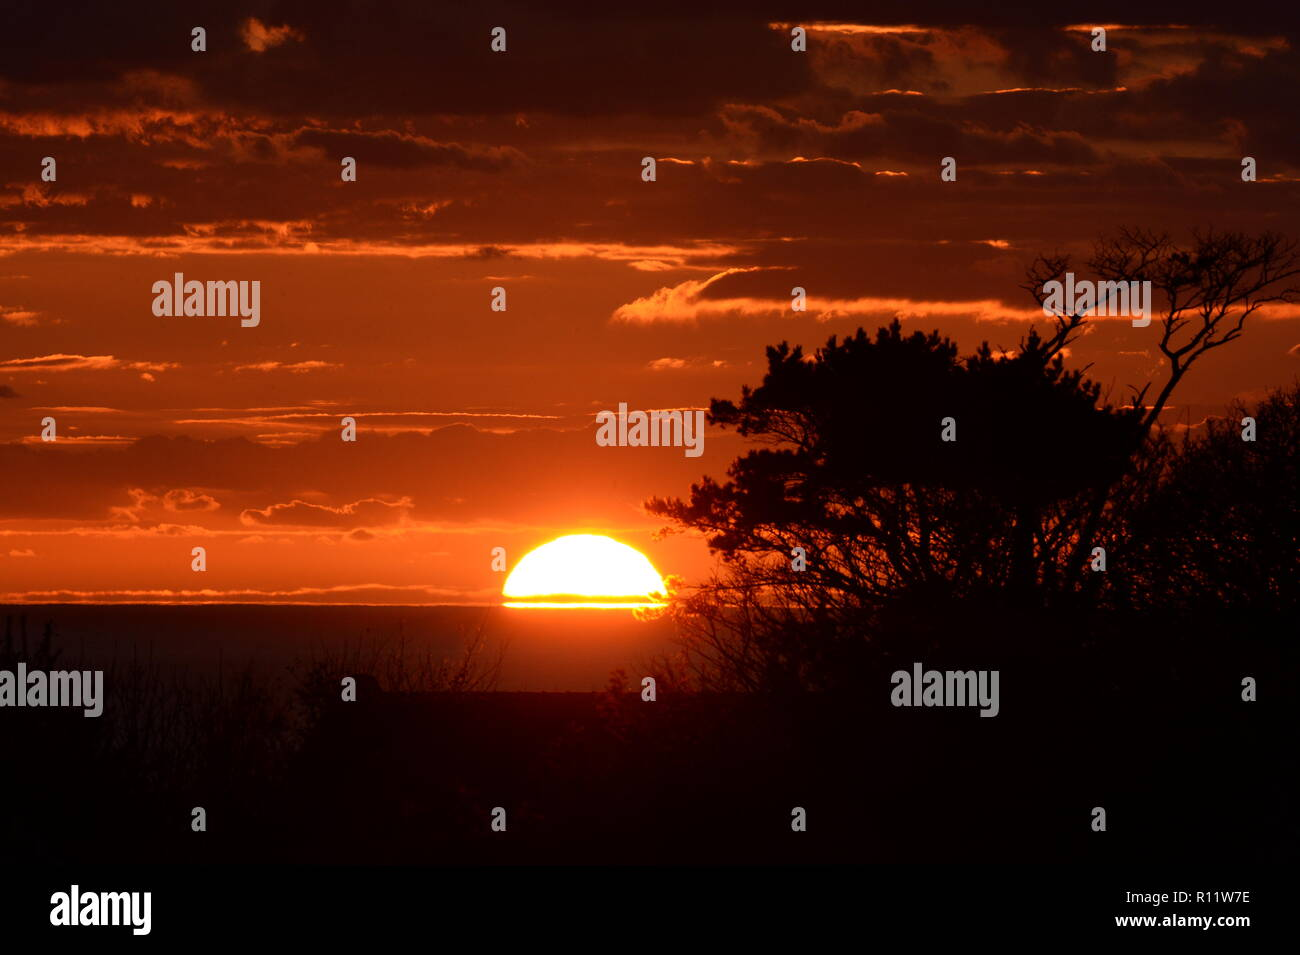 Sunset at Mumbles. A Setting Sun disappears below the horizon causing atmospheric refraction creating the beautiful spectrum of colours in the sky. - Stock Image